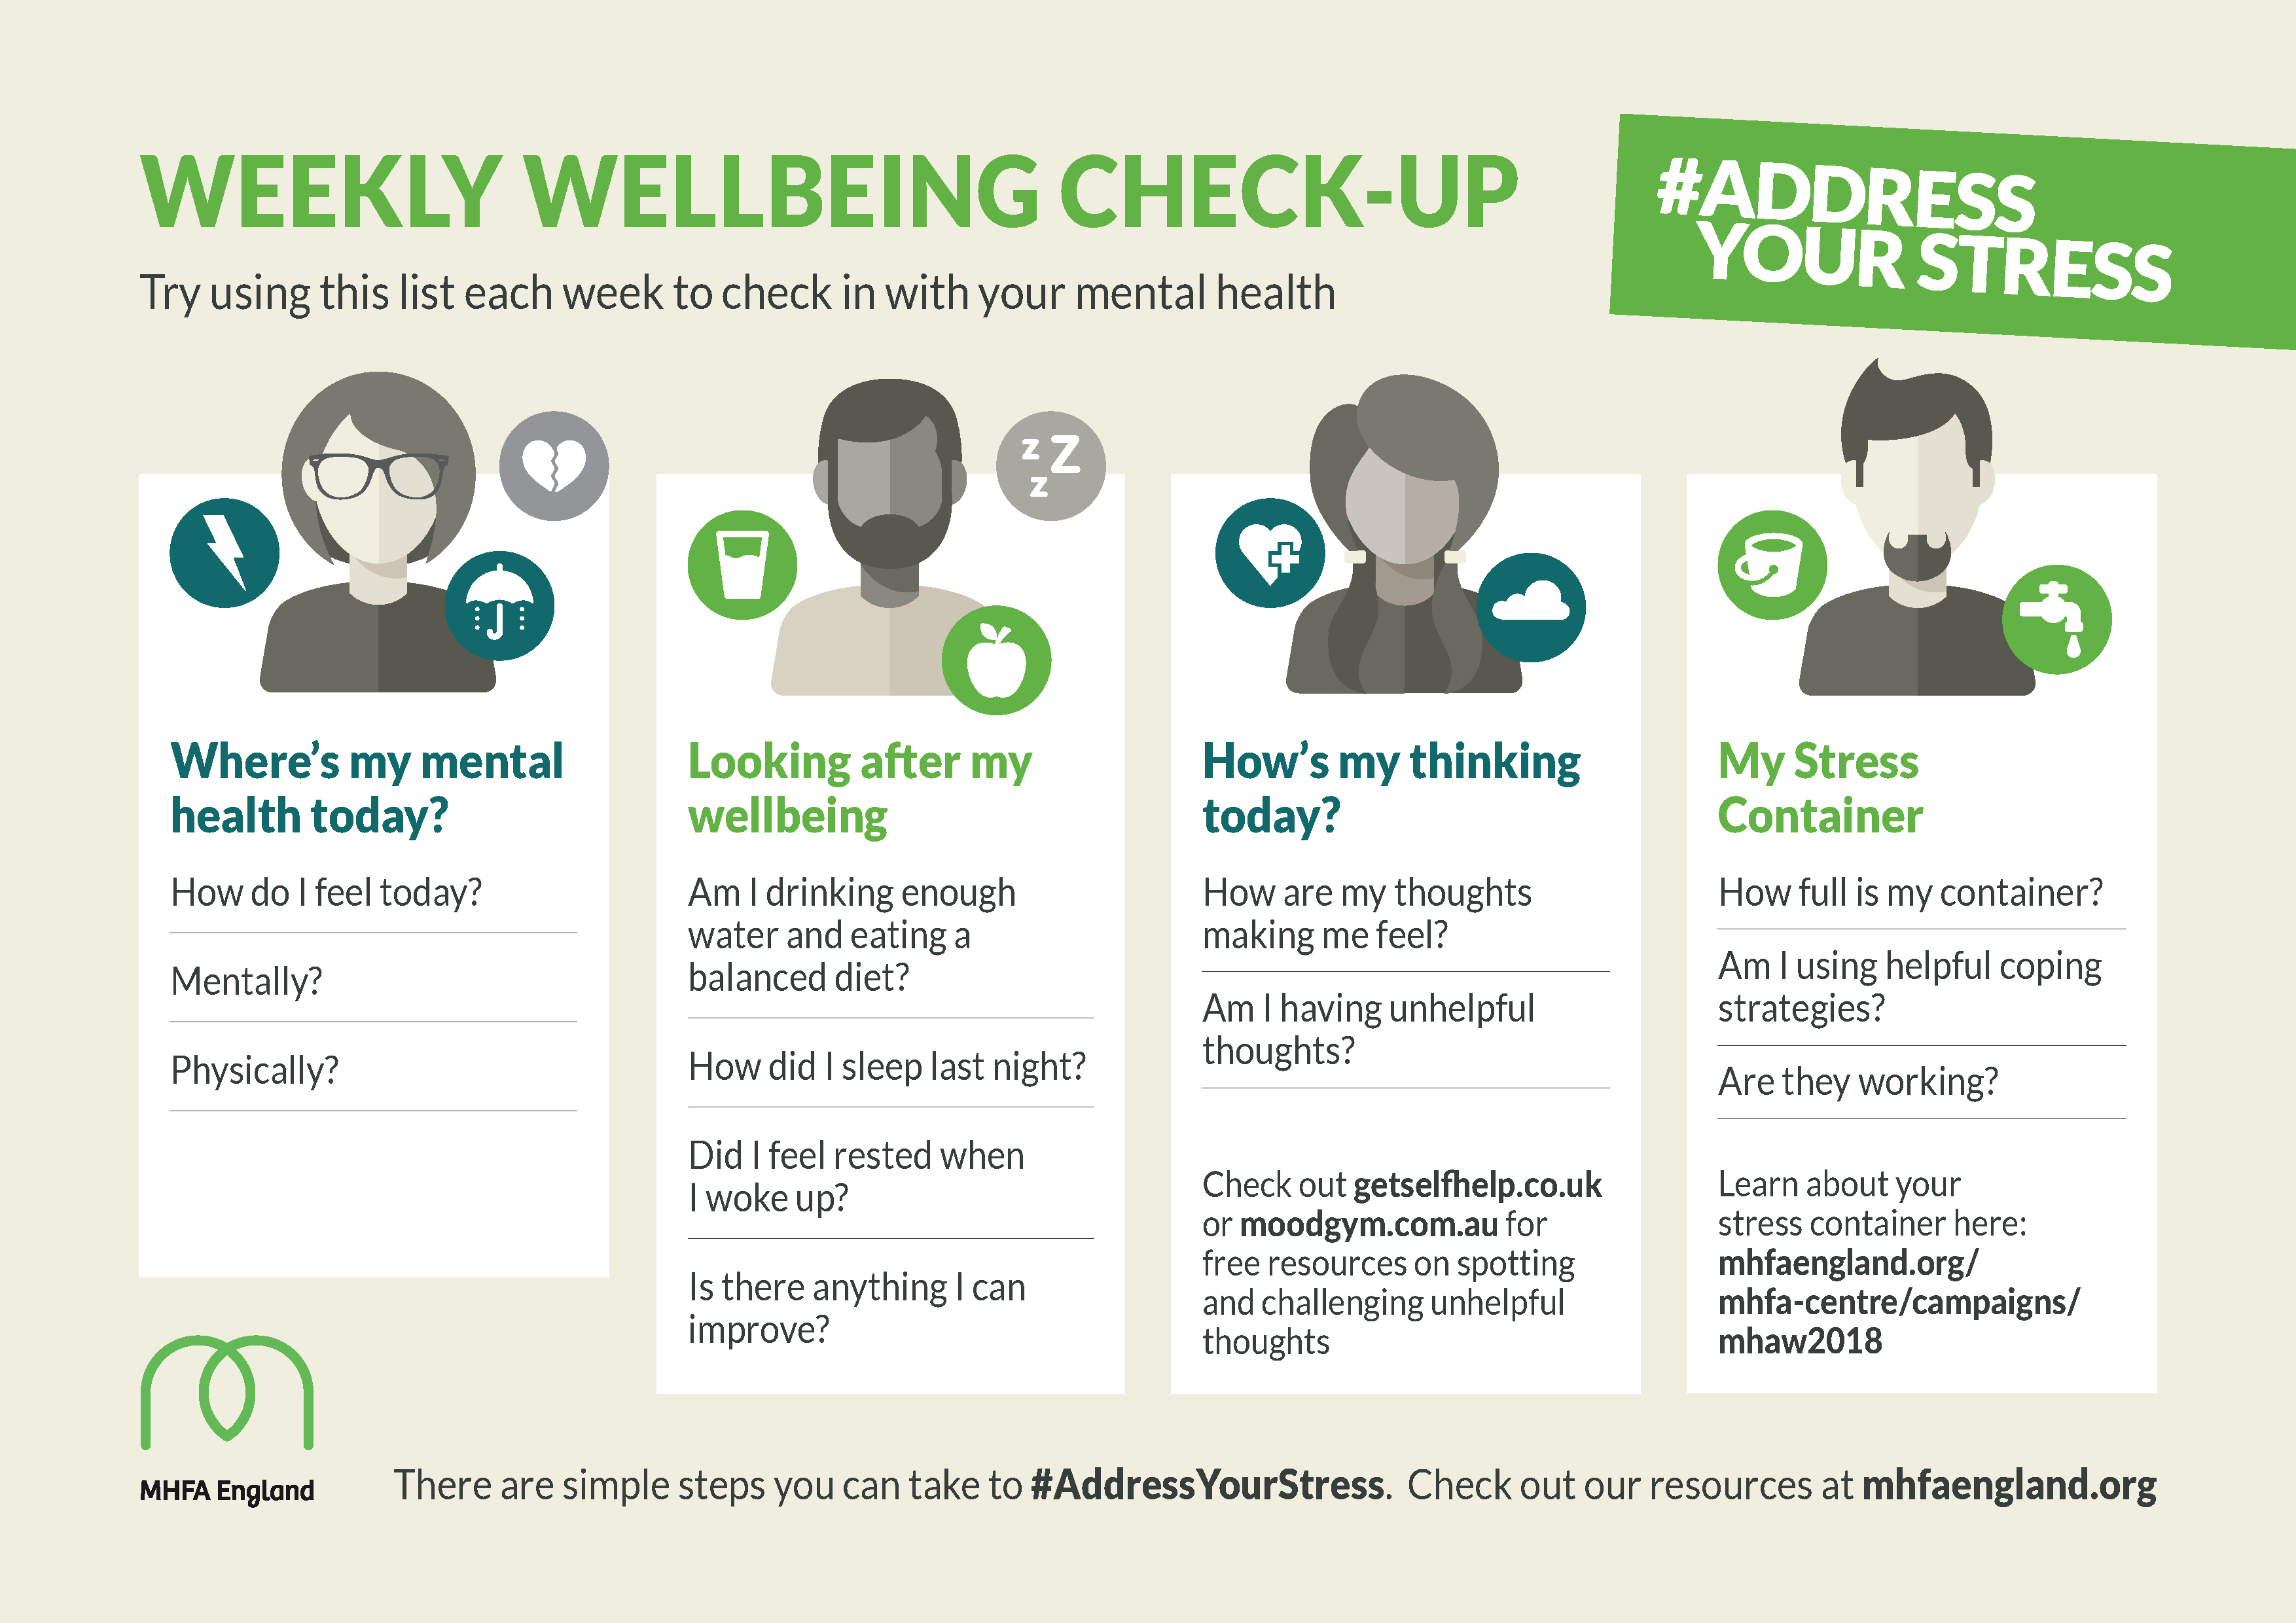 Poster - Weekly wellbeing check-up